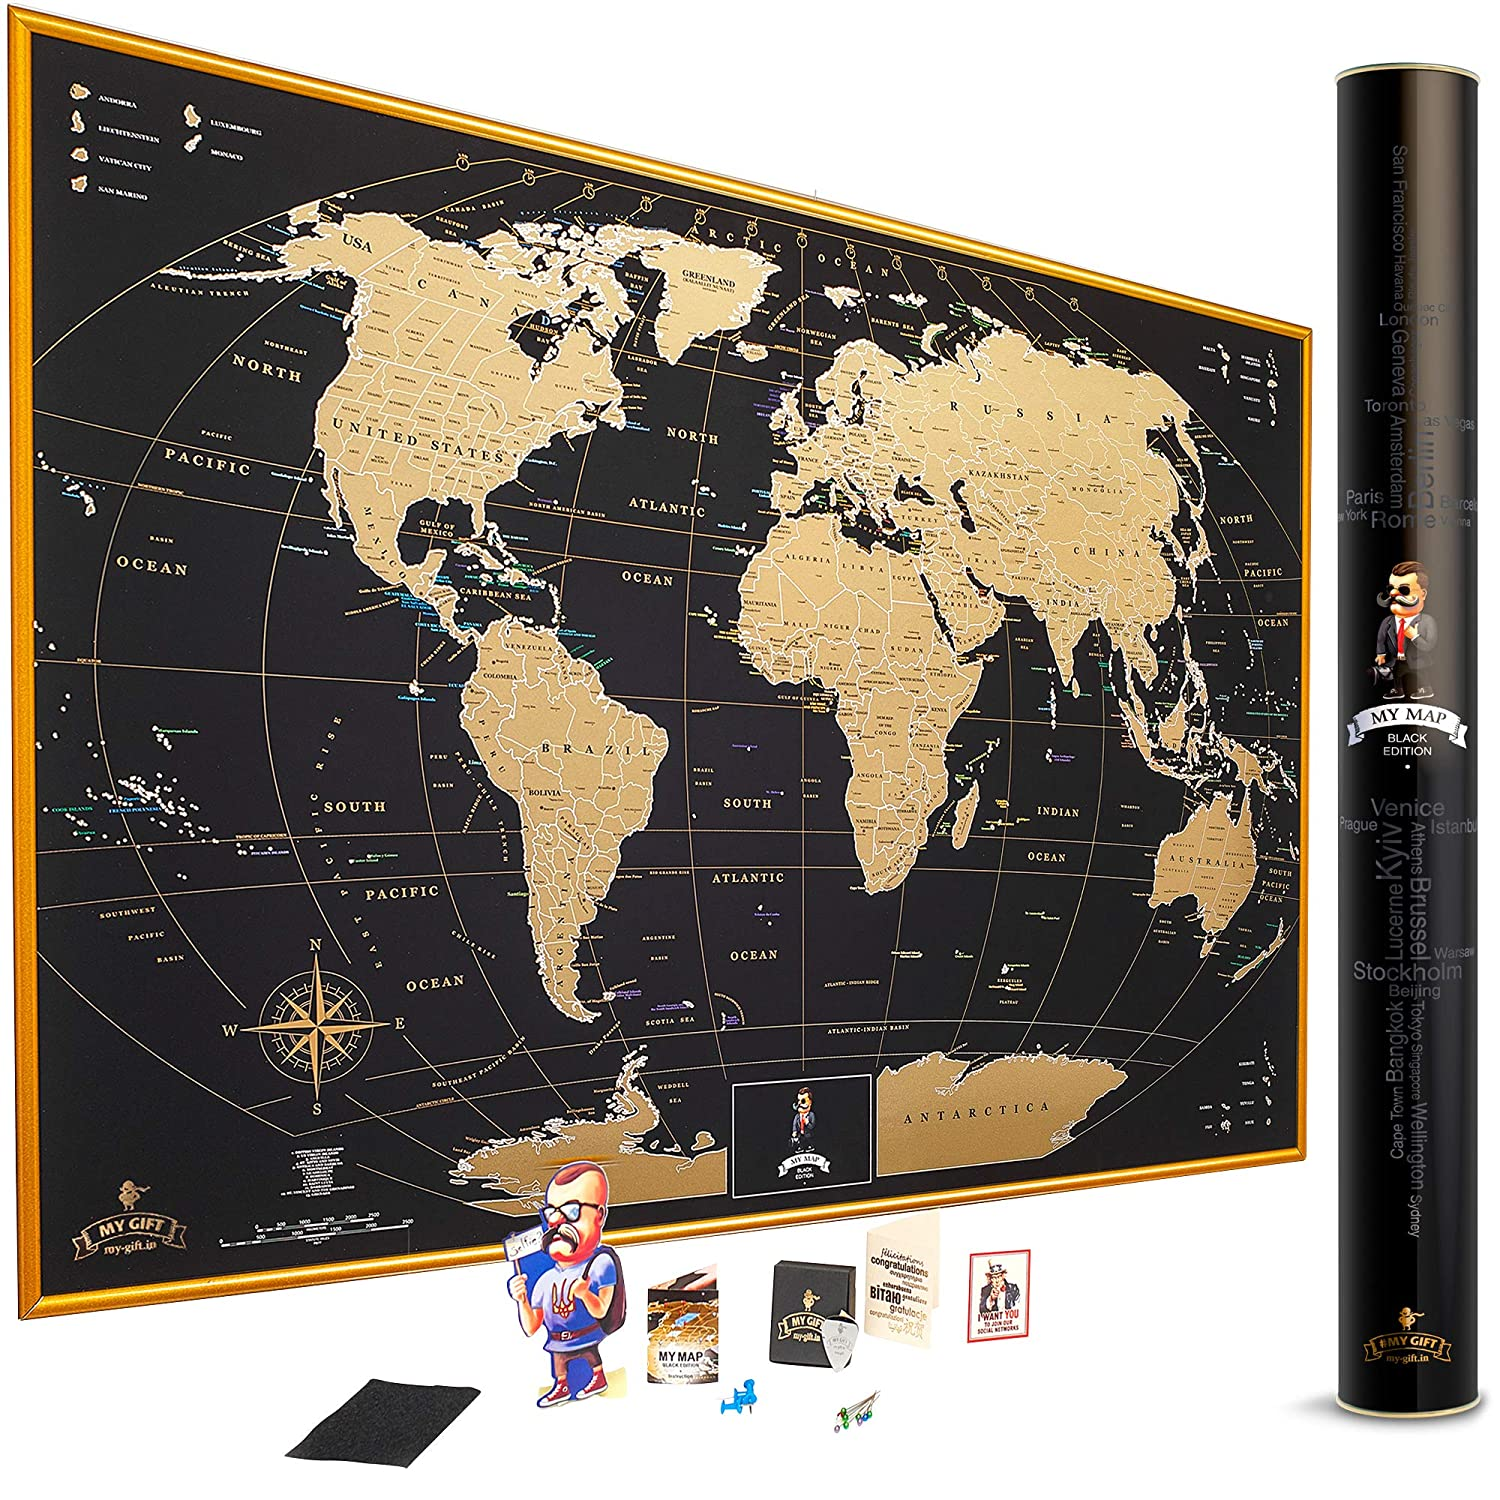 MyMap Gold Scratch Off World Map Wall Poster with US States